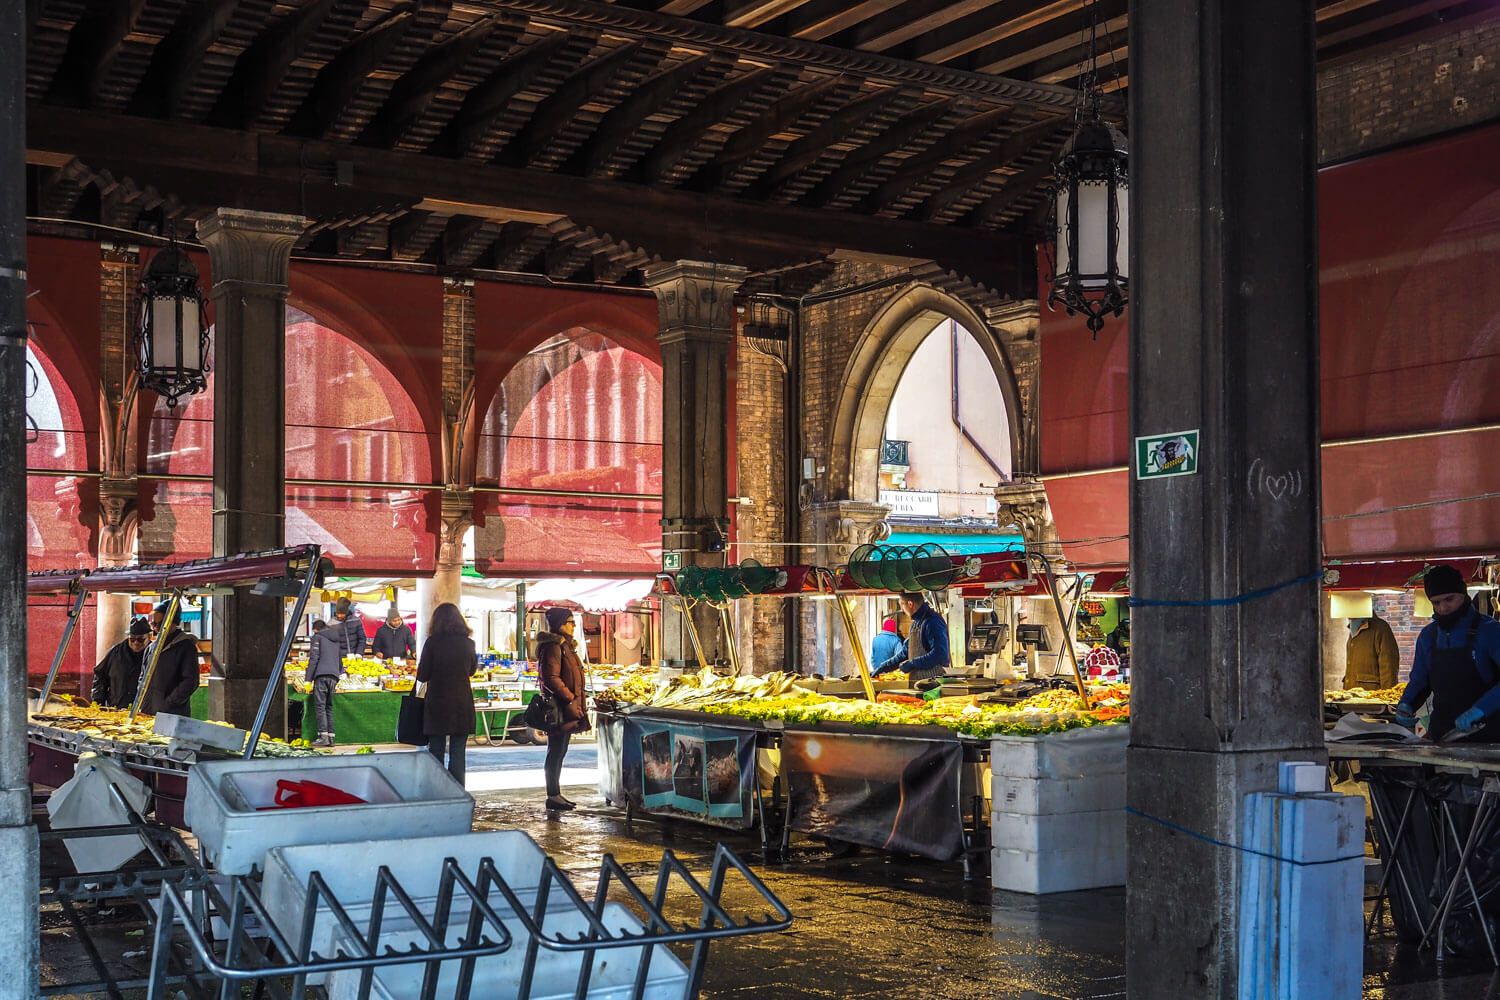 Venice,fish market building, travel photography